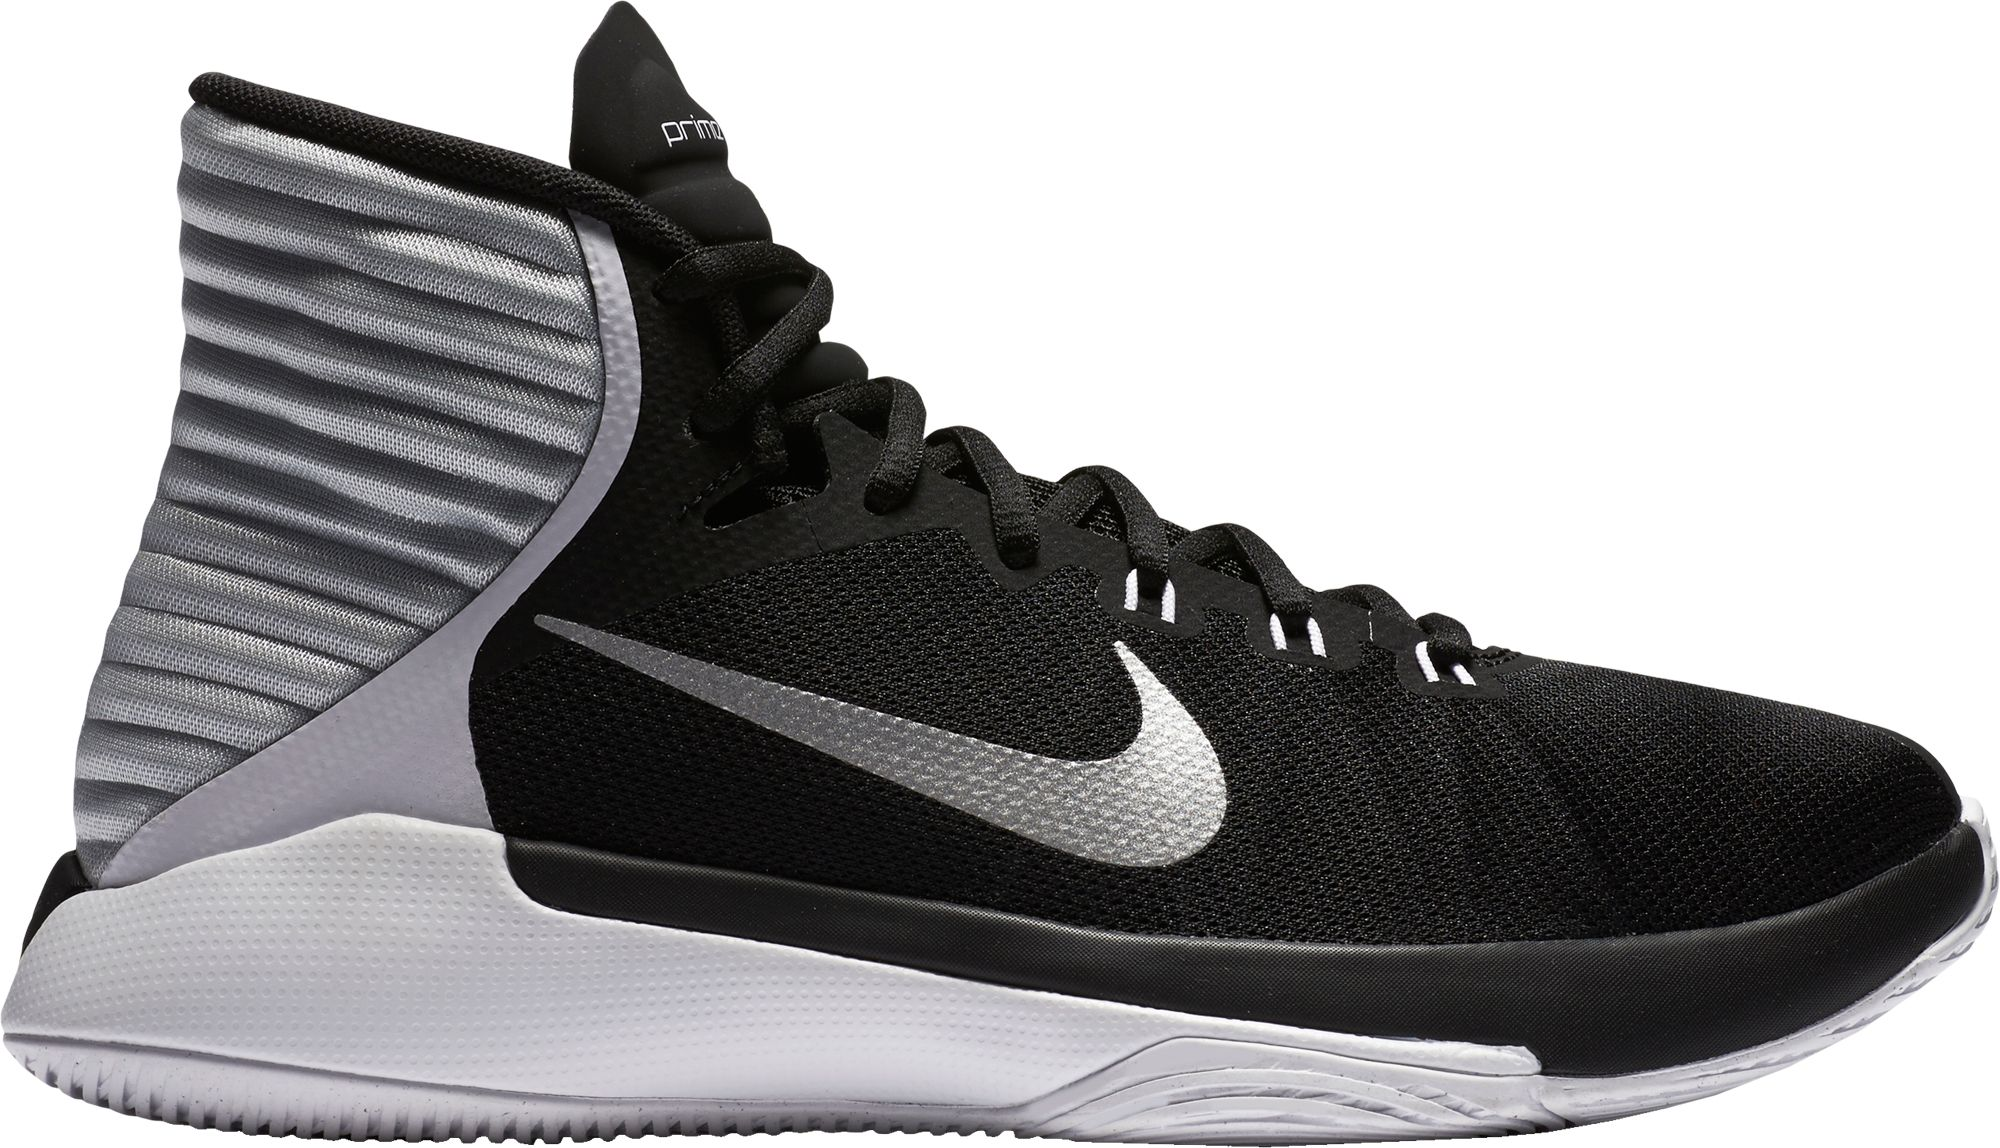 Nike Women's Prime Hype DF 2016 Basketball Shoes. 0:00. 0:00 / 0:00.  noImageFound ???